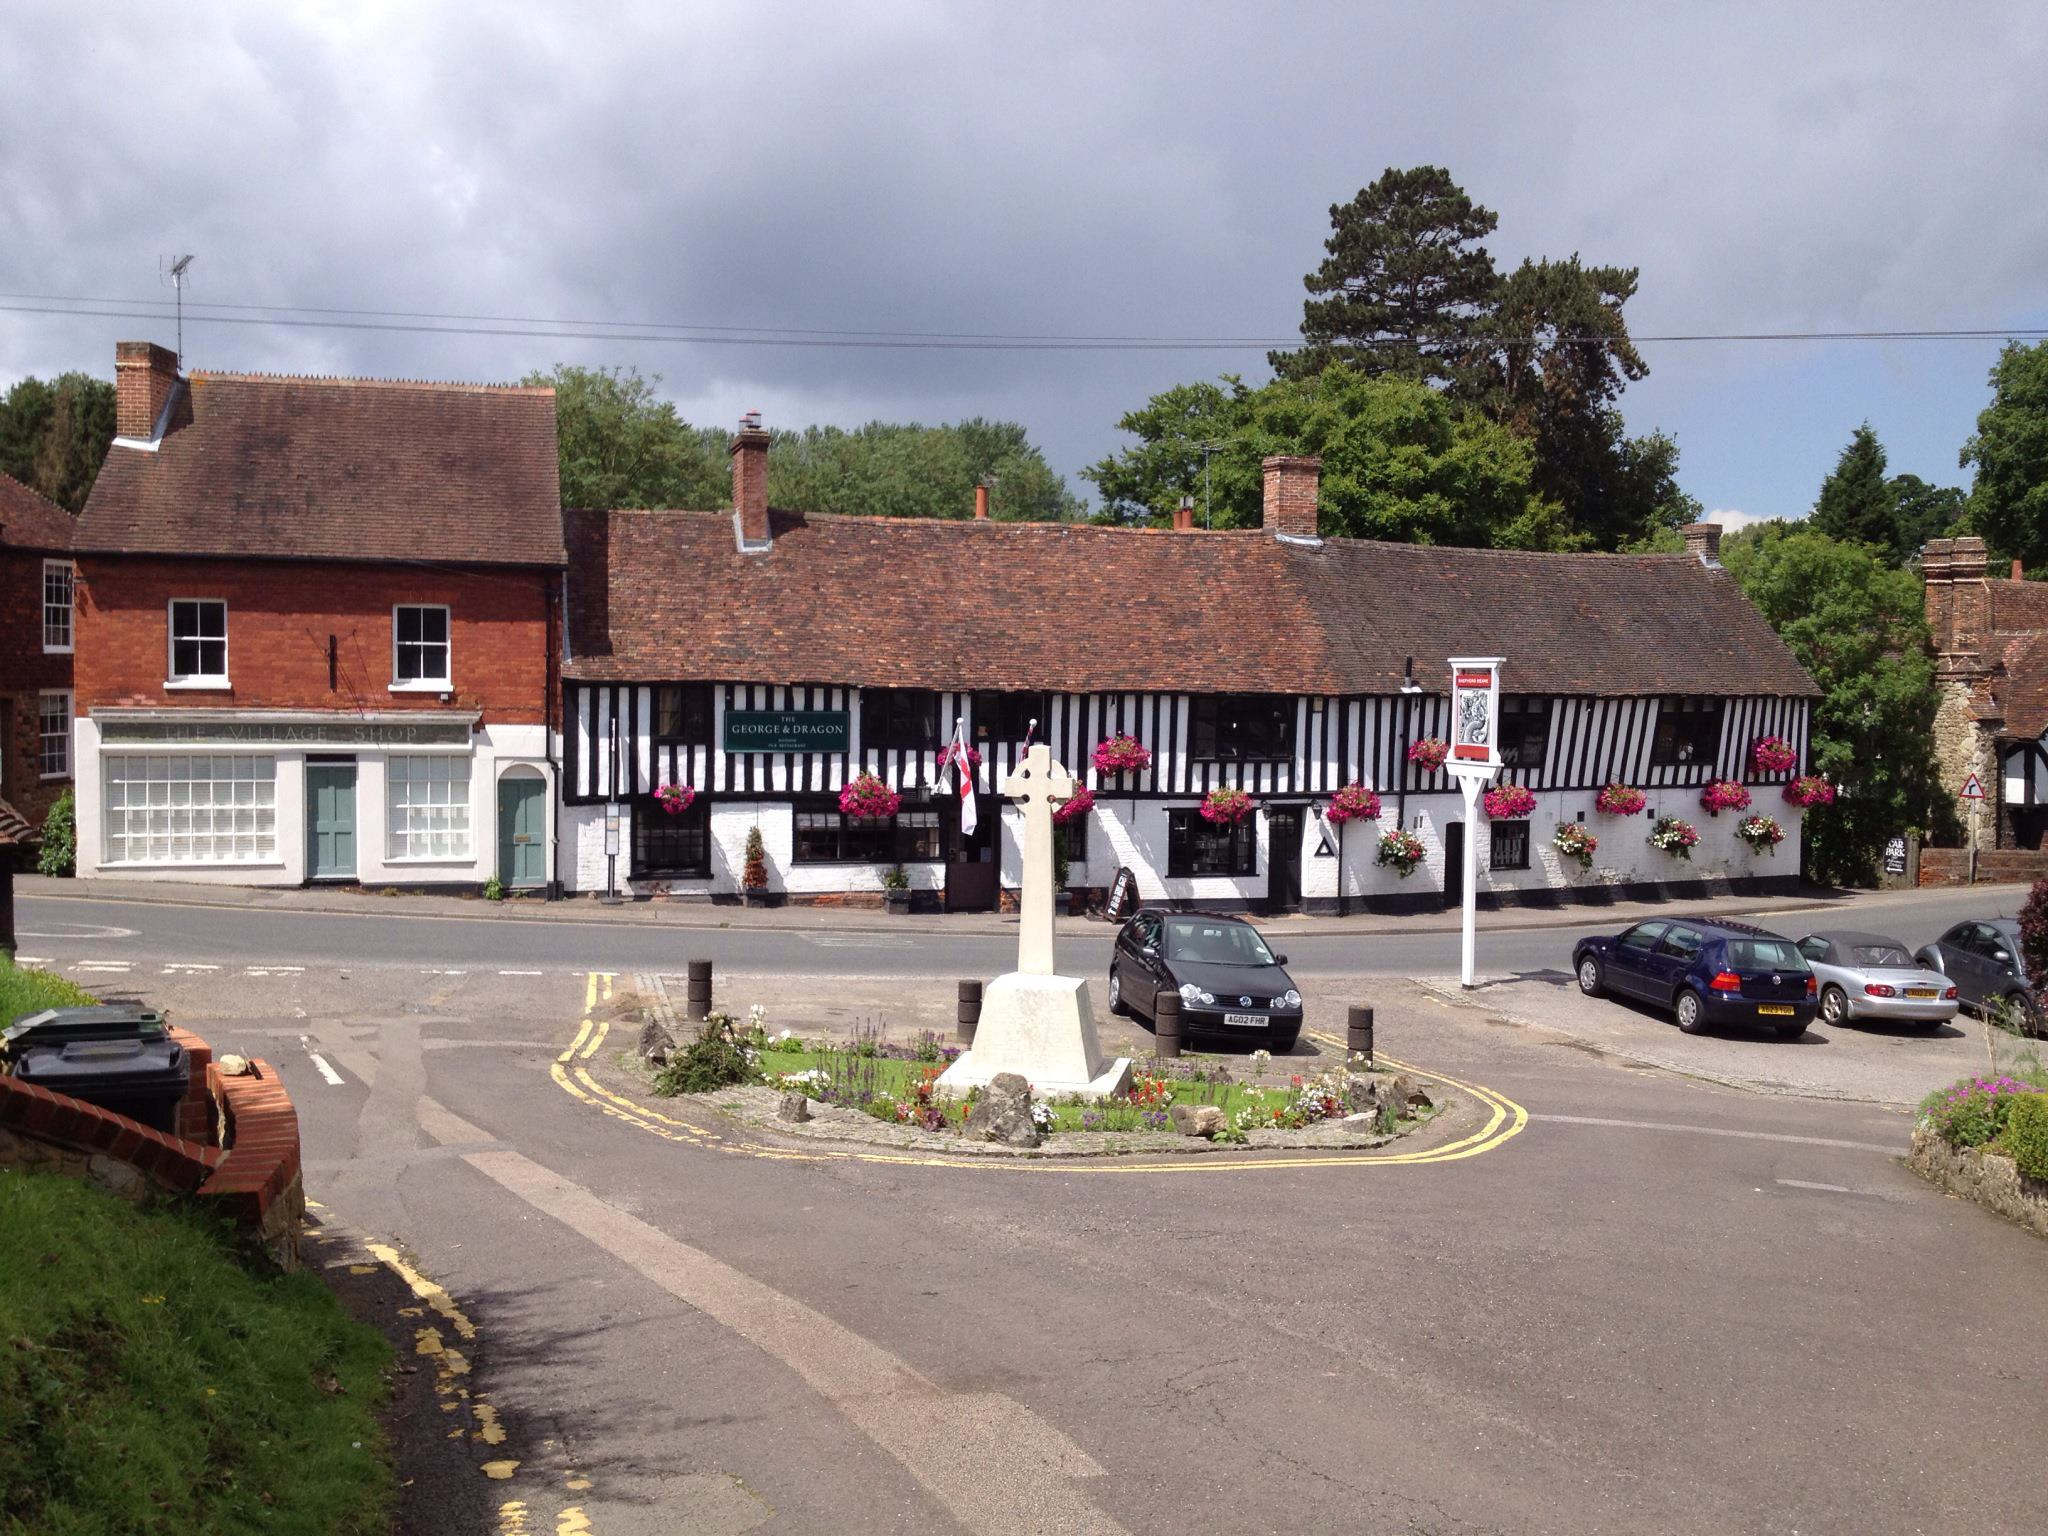 George and Dragon, Ightham and the war memorial